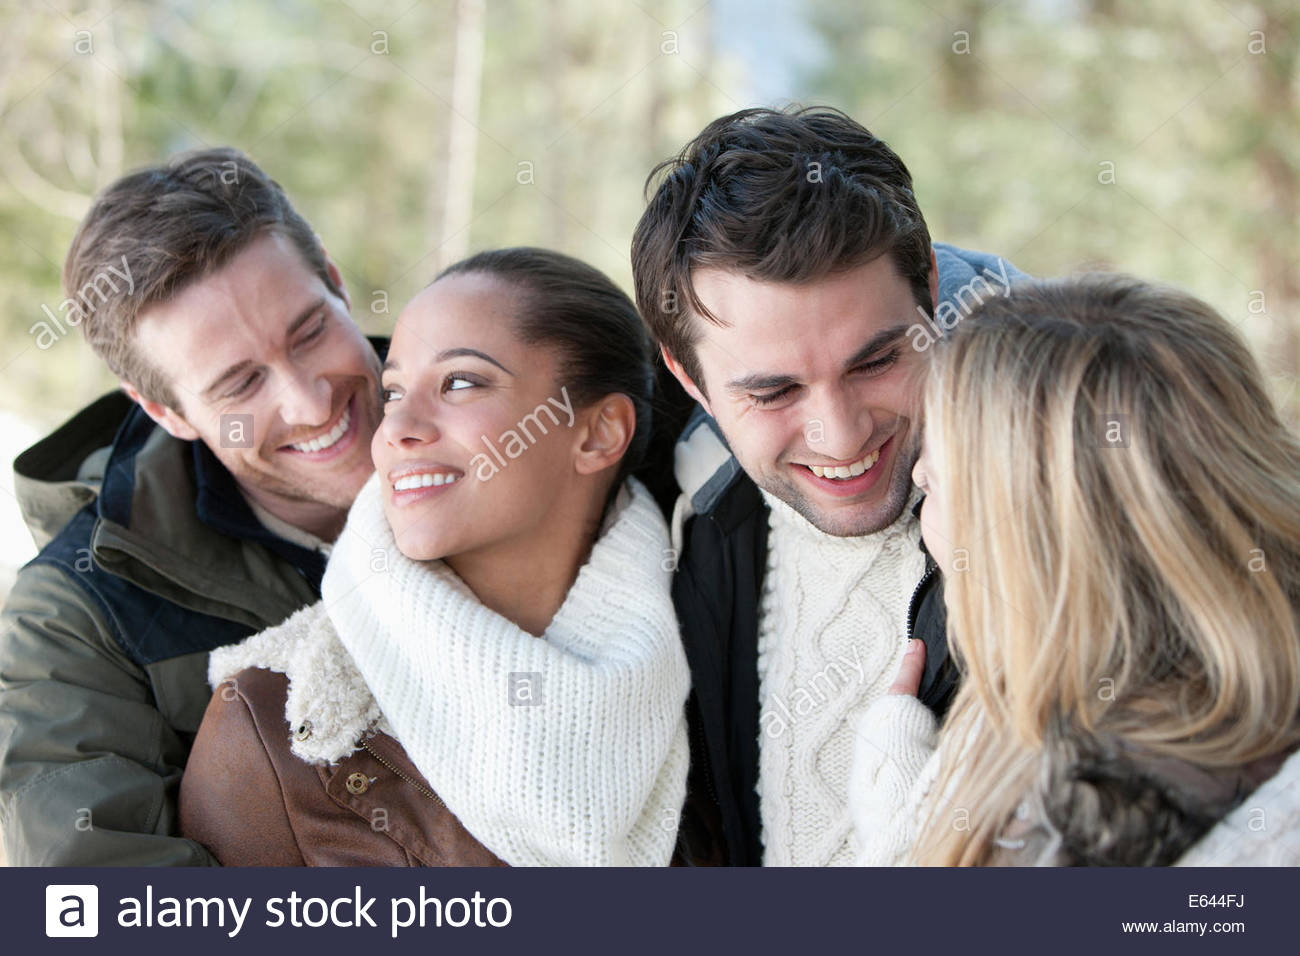 Smiling couples hugging - Stock Image